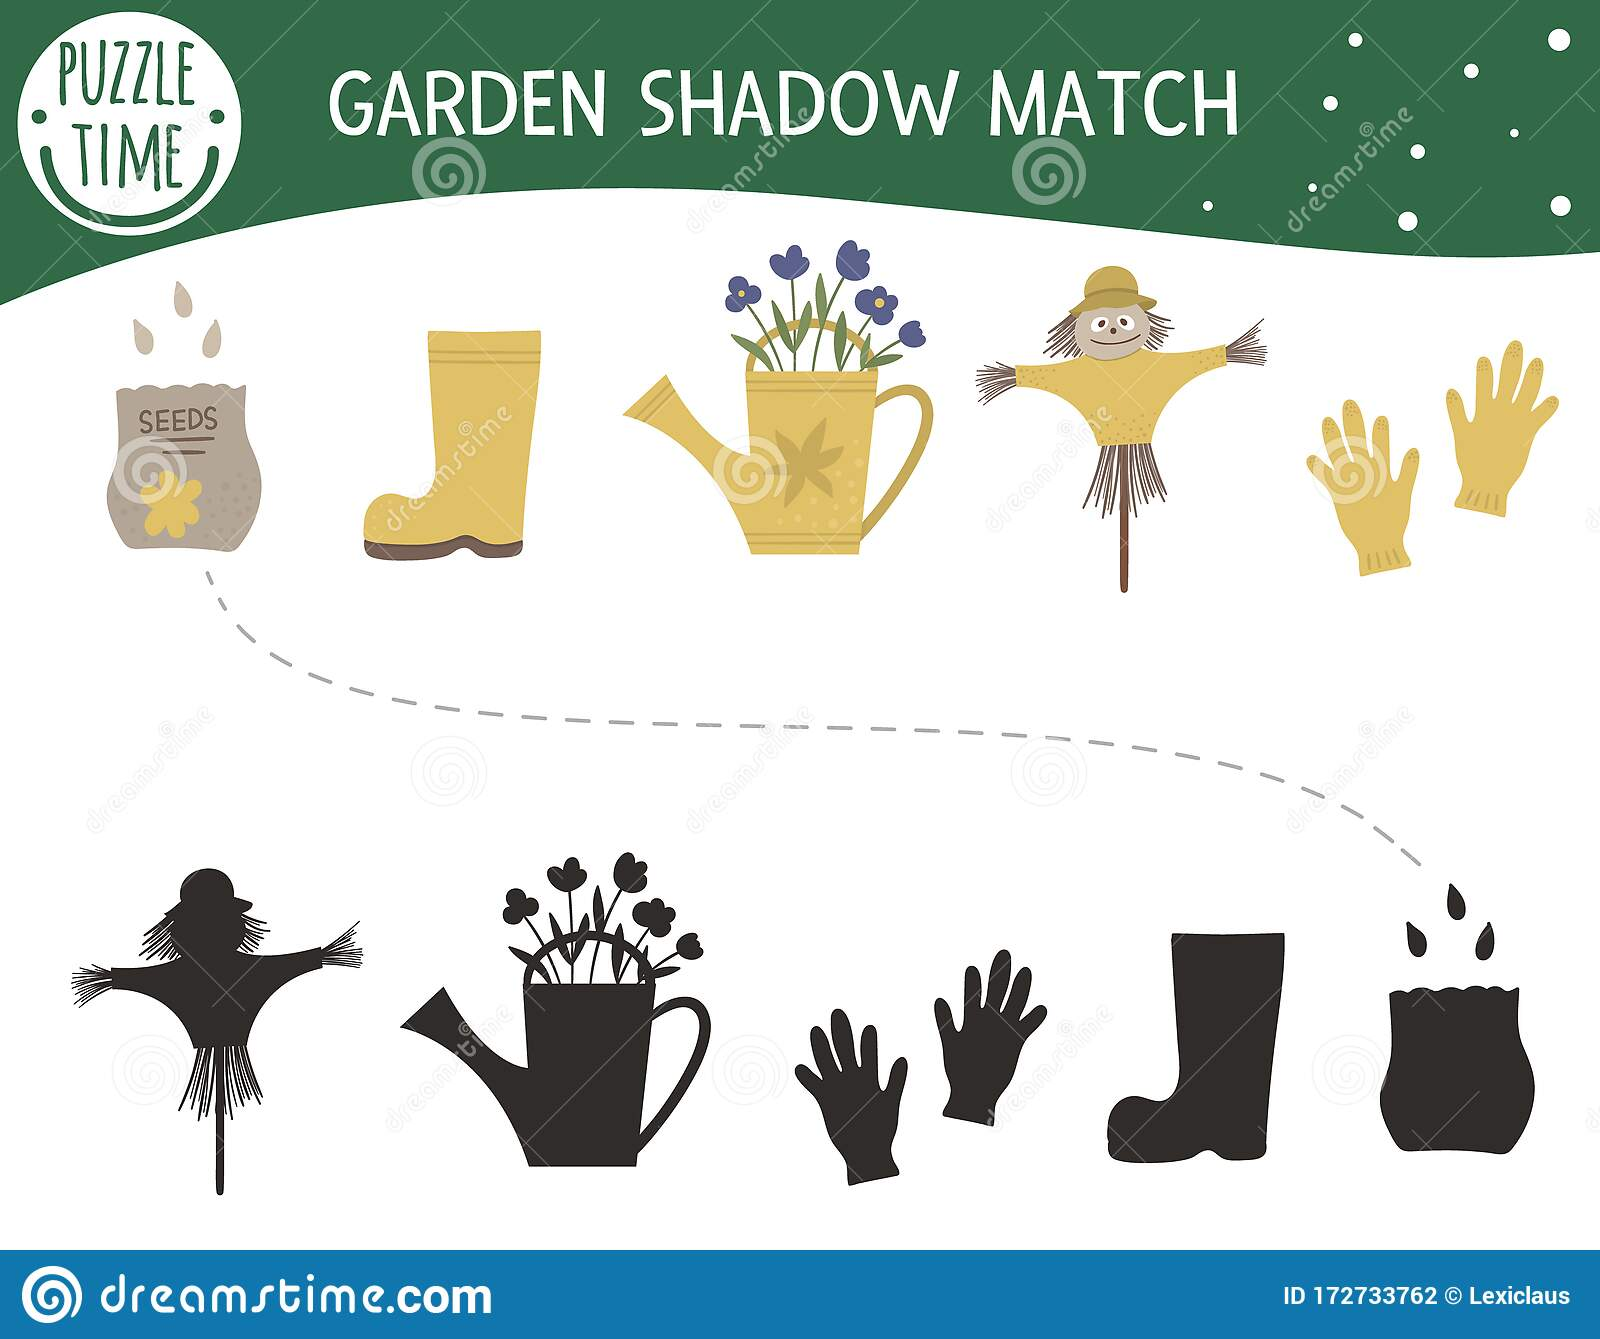 Shadow Matching Activity For Children With Garden Symbols